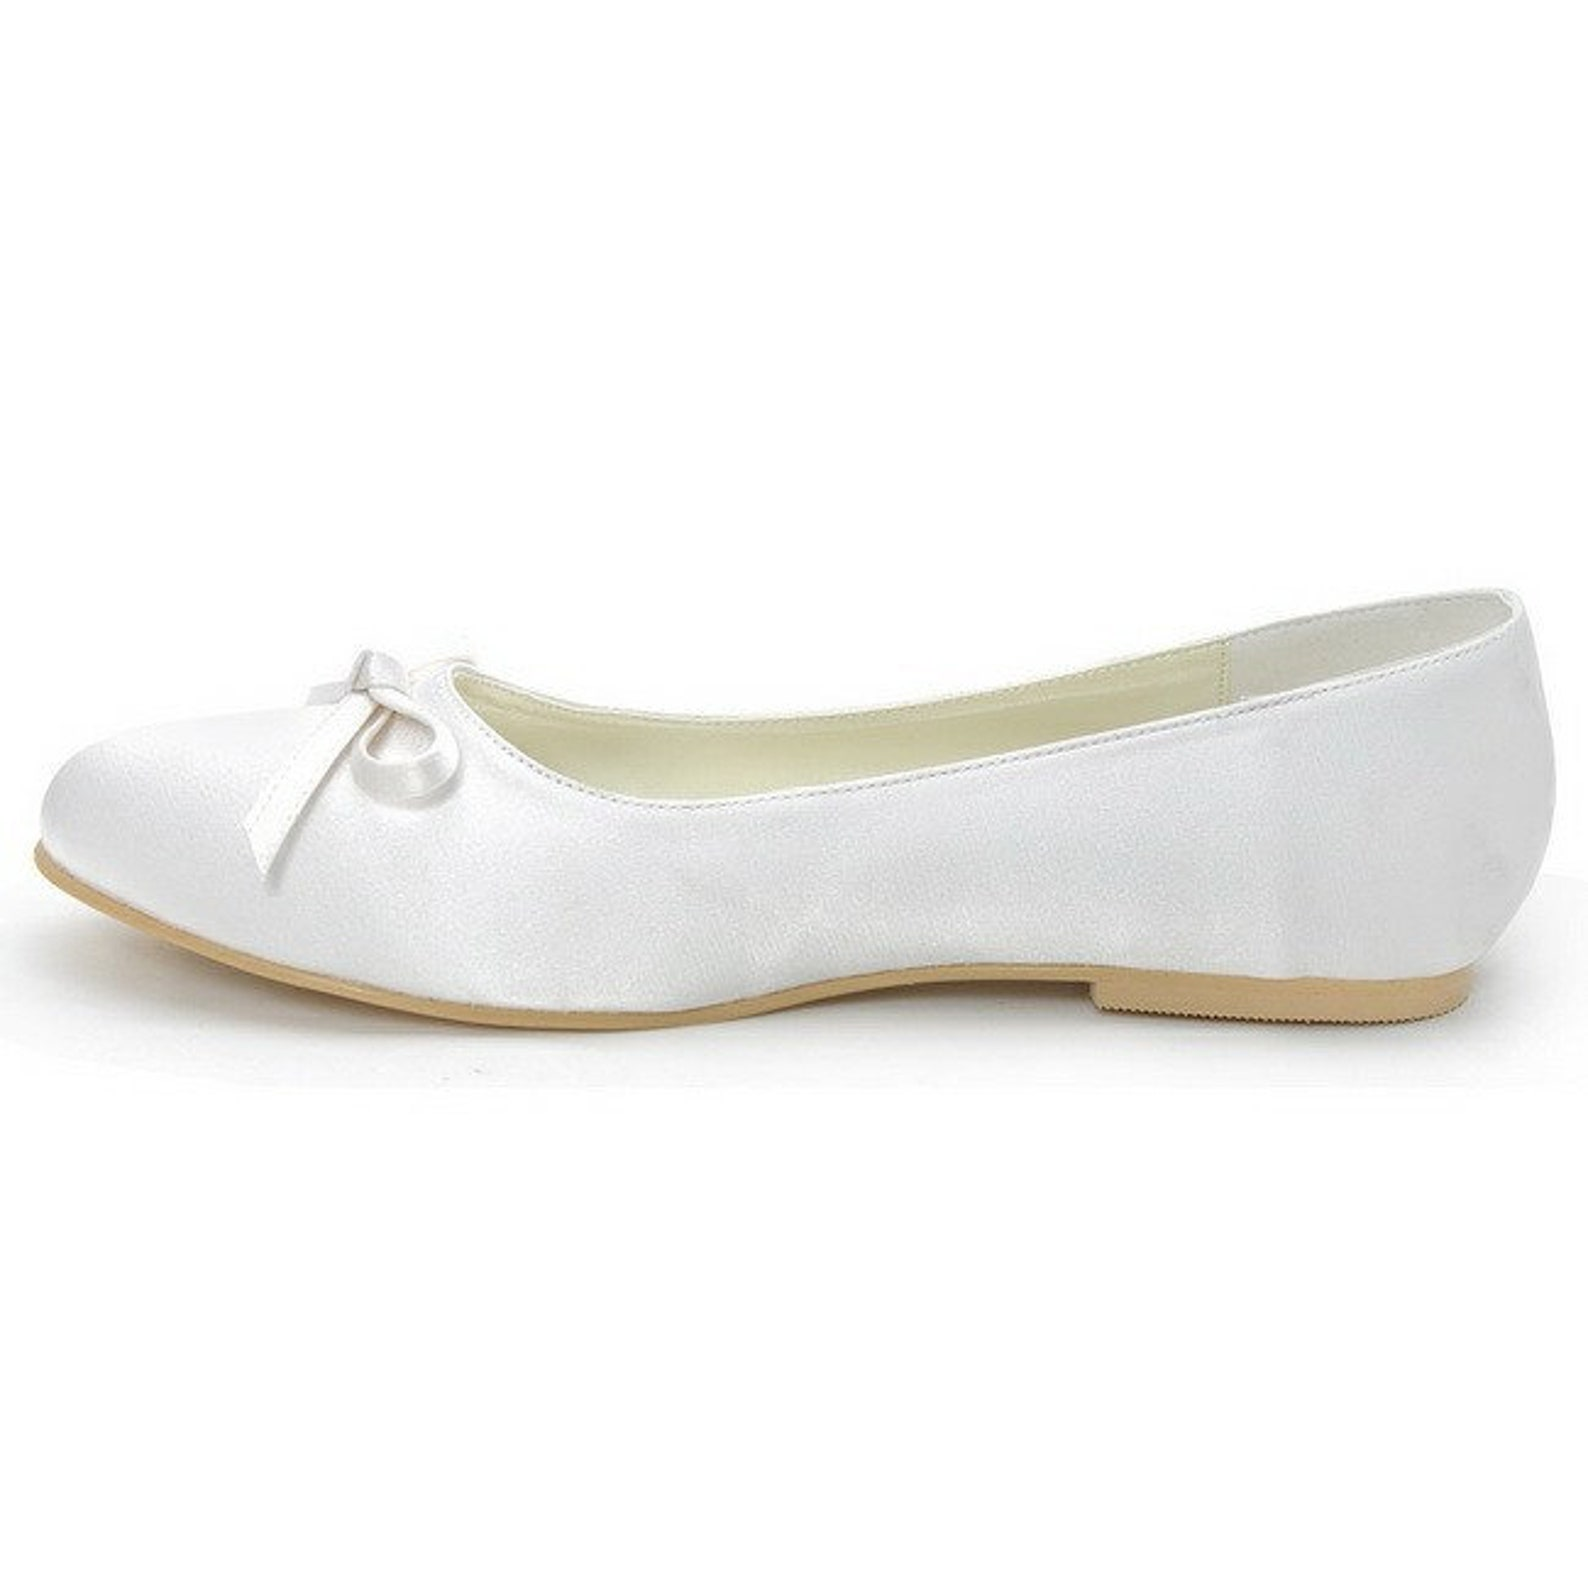 wedding flats, comfortable wedding shoes, ballet flats, small bow, flat heel, bridesmaid shoes, white wedding flats, enclosed to